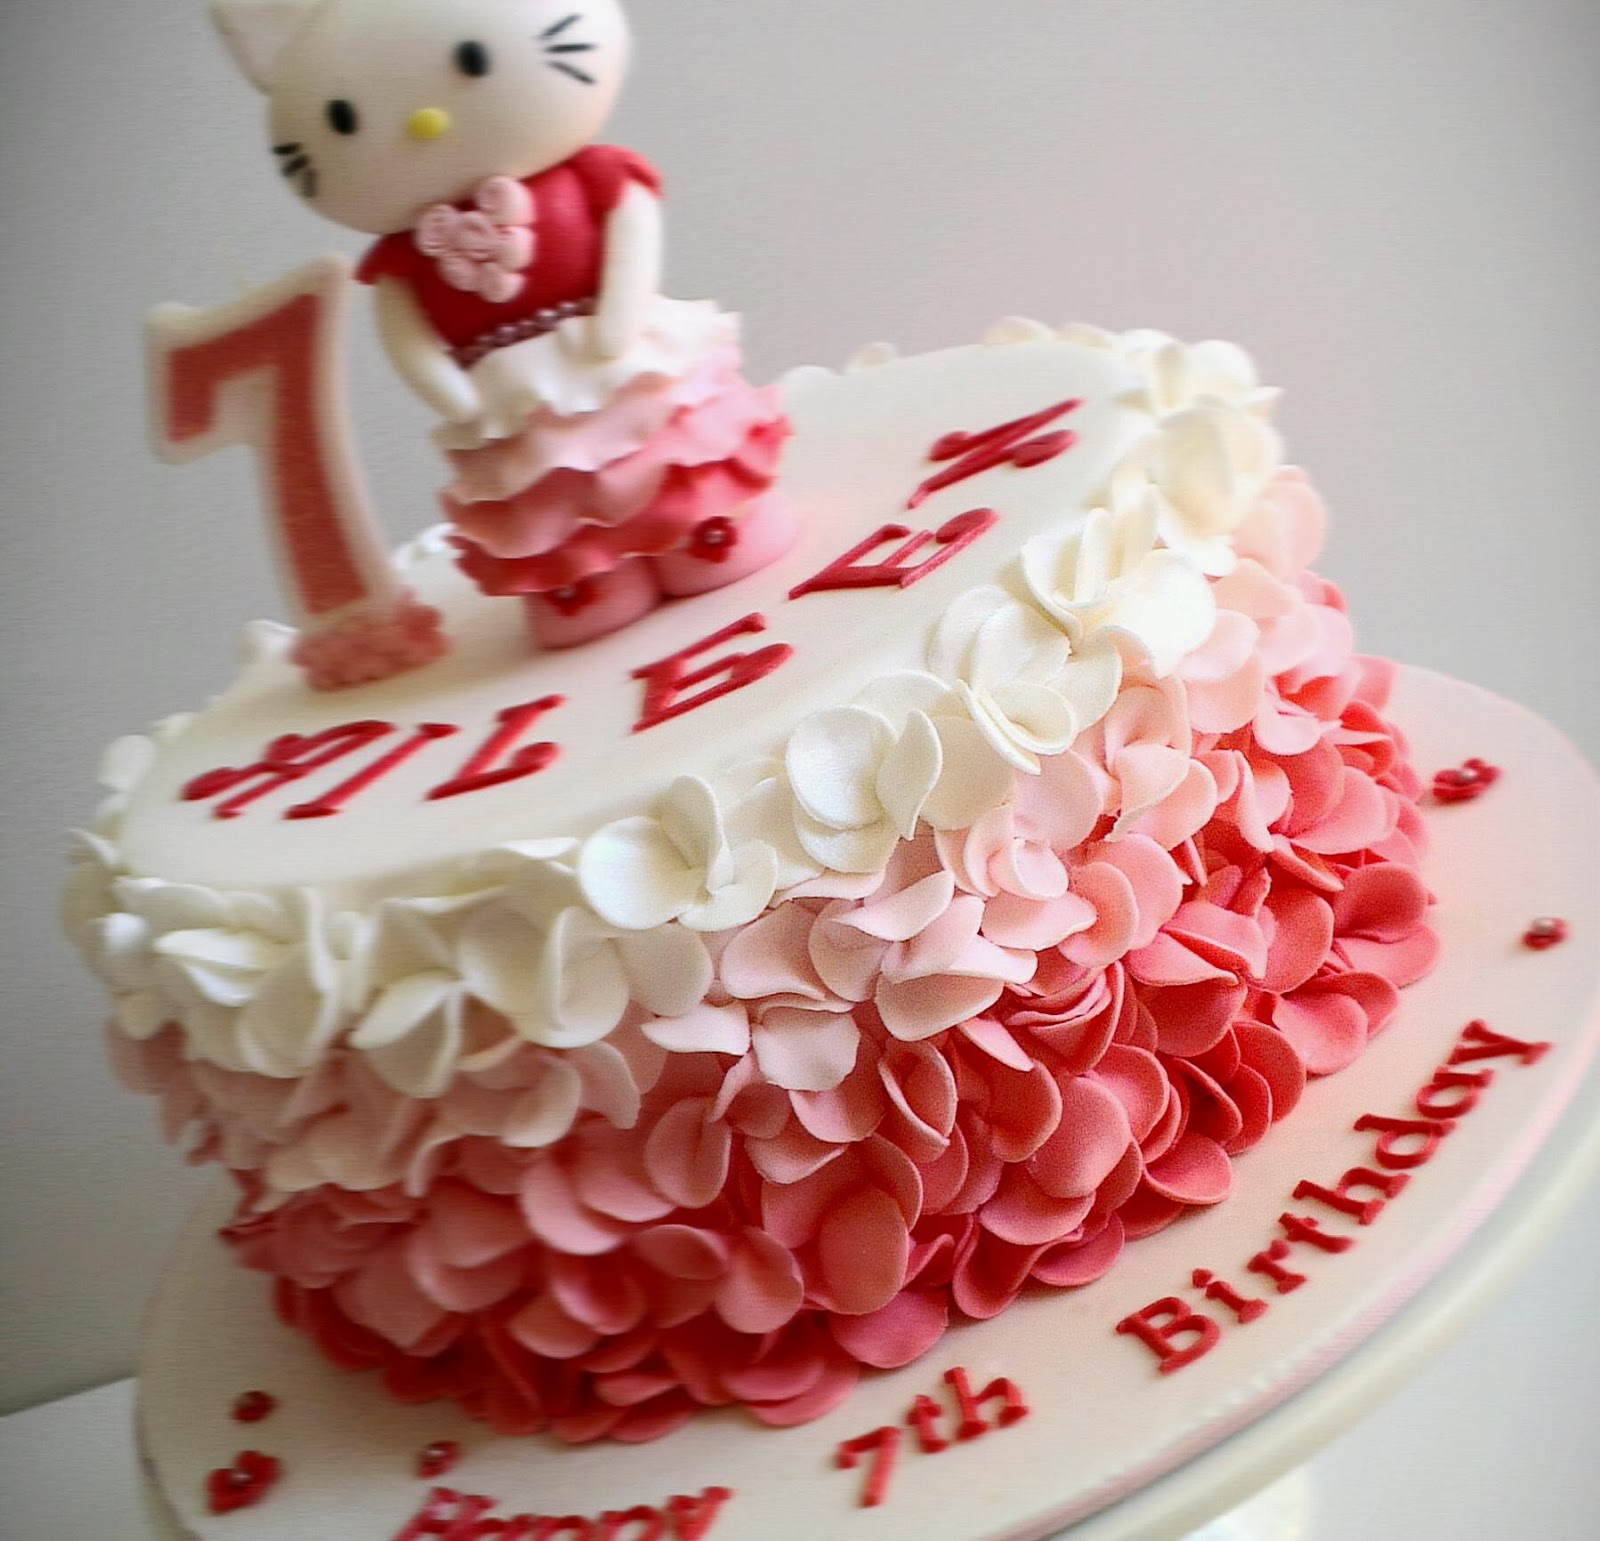 Heavenly Dlights Hello Kitty with Ruffles Birthday Cake for Aileen